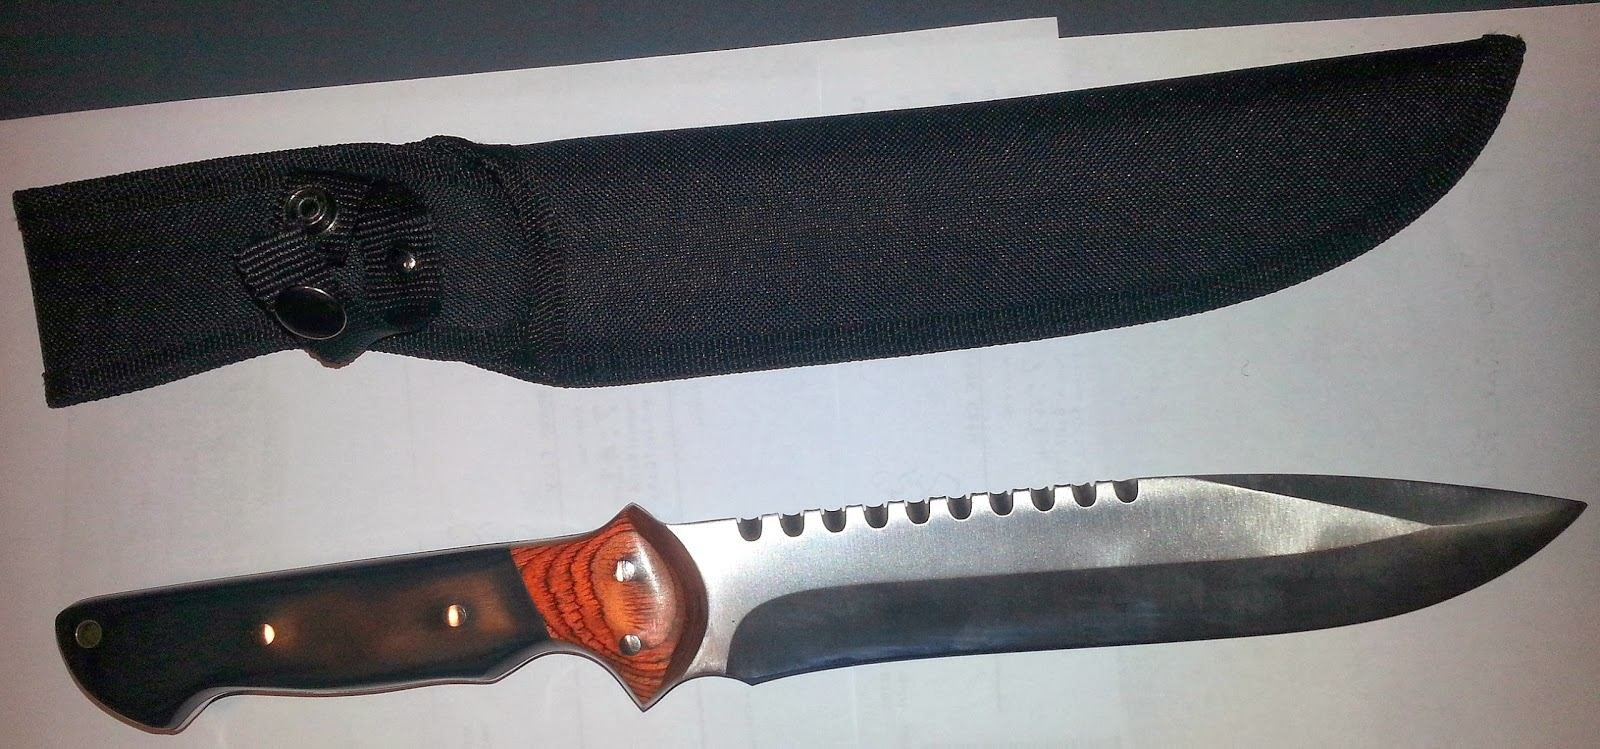 Knife Discovered at EWR